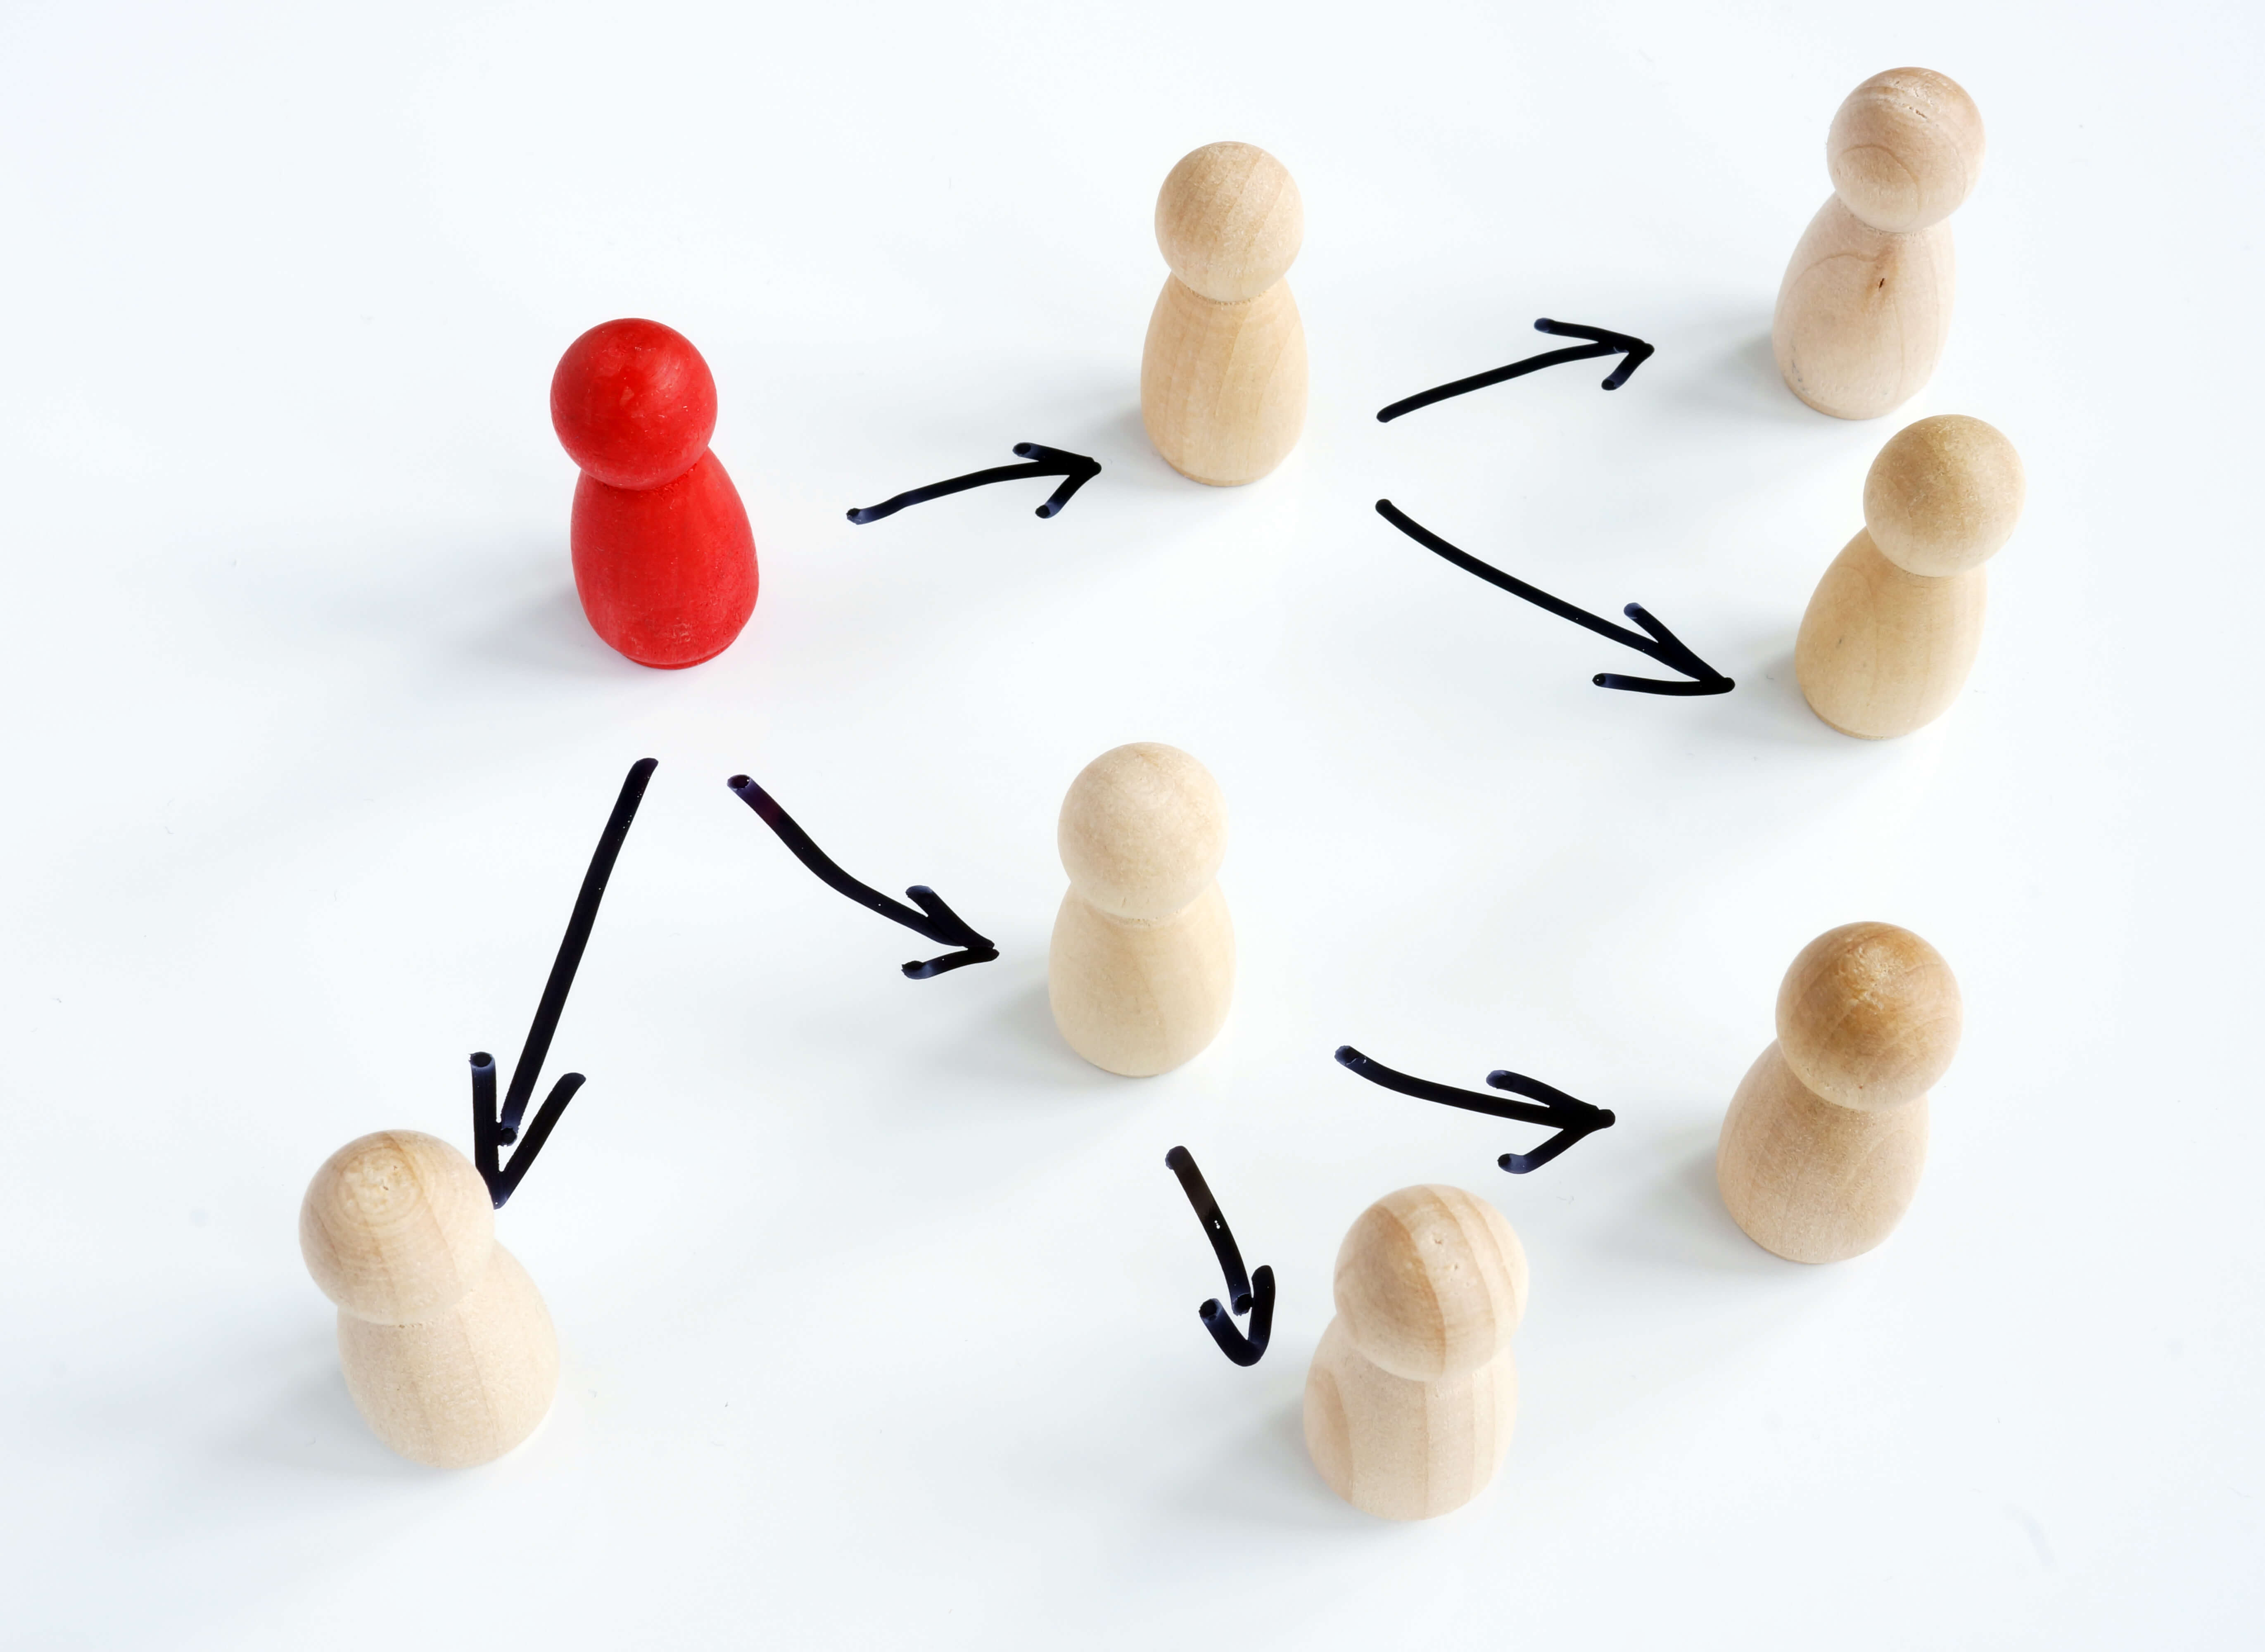 Empowering Others Through the Art of Delegation